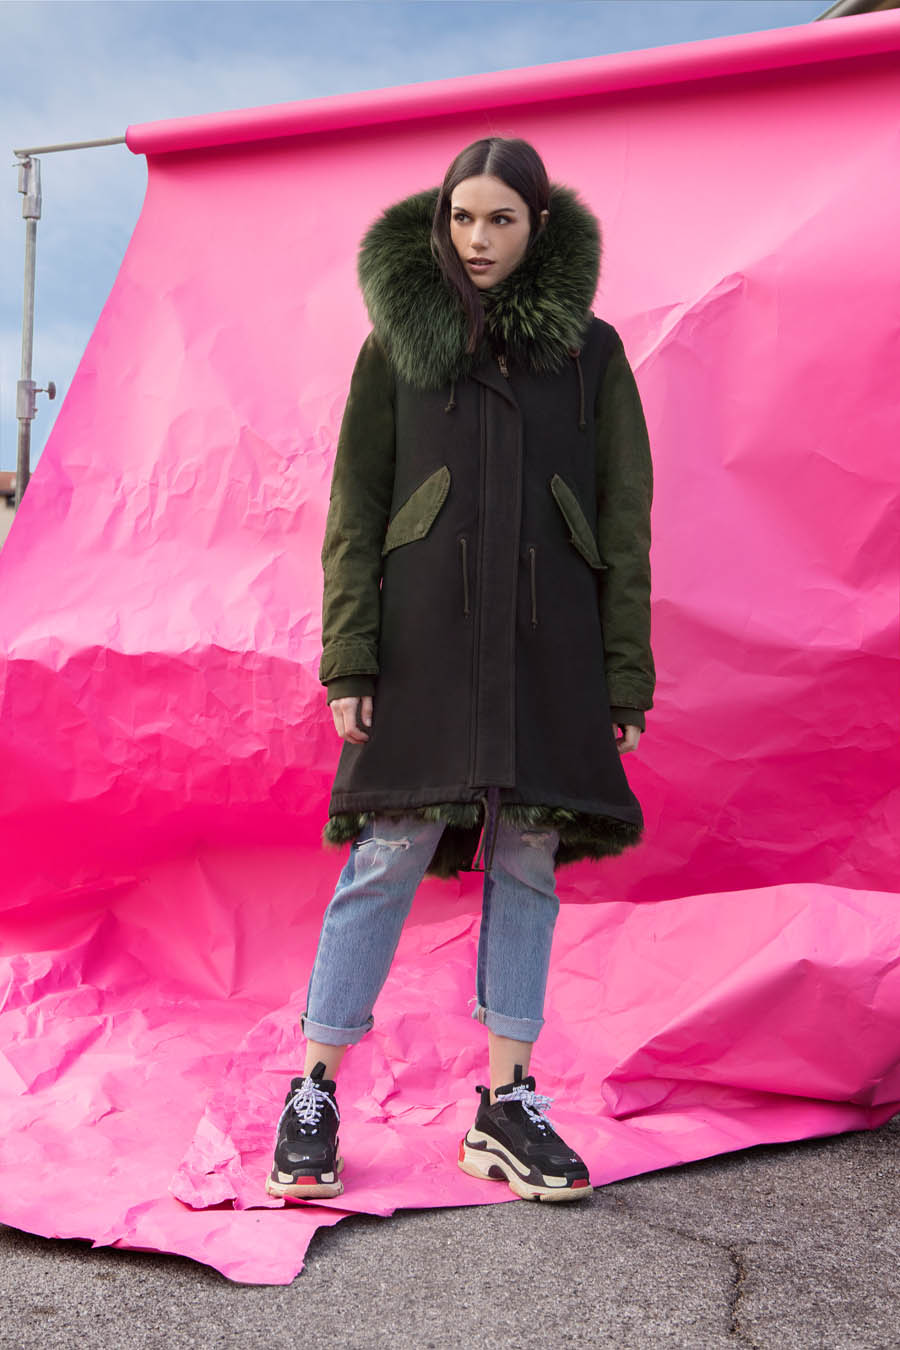 PK19262VO 9494 01 gold rush woman parka fur green - Fall Winter 2019-20